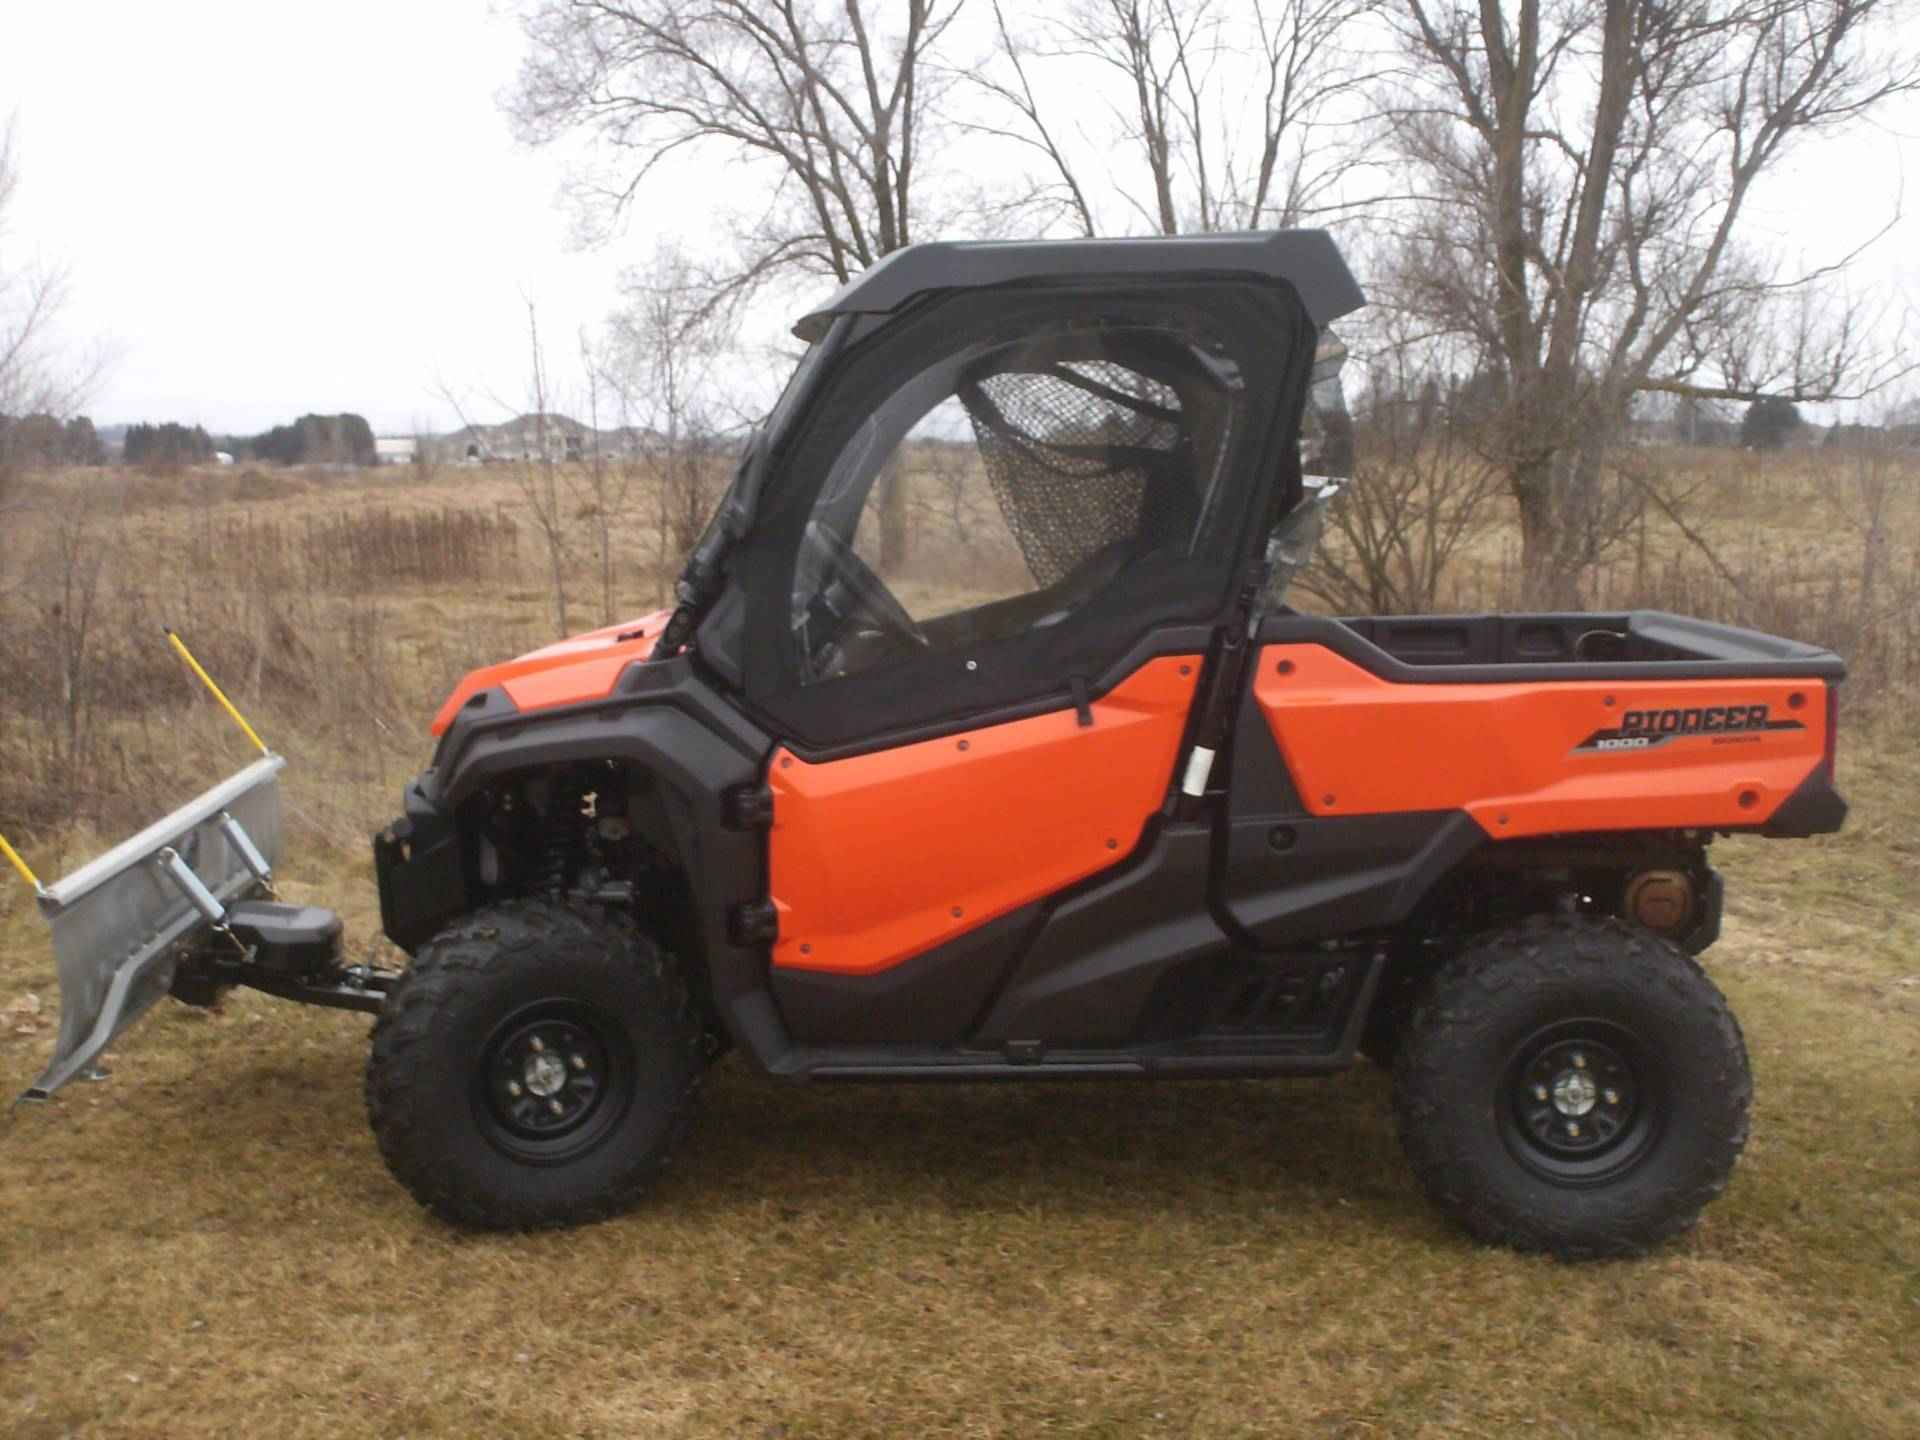 used 2016 honda pioneer 1000 eps atvs for sale in wisconsin on atv trades. Black Bedroom Furniture Sets. Home Design Ideas